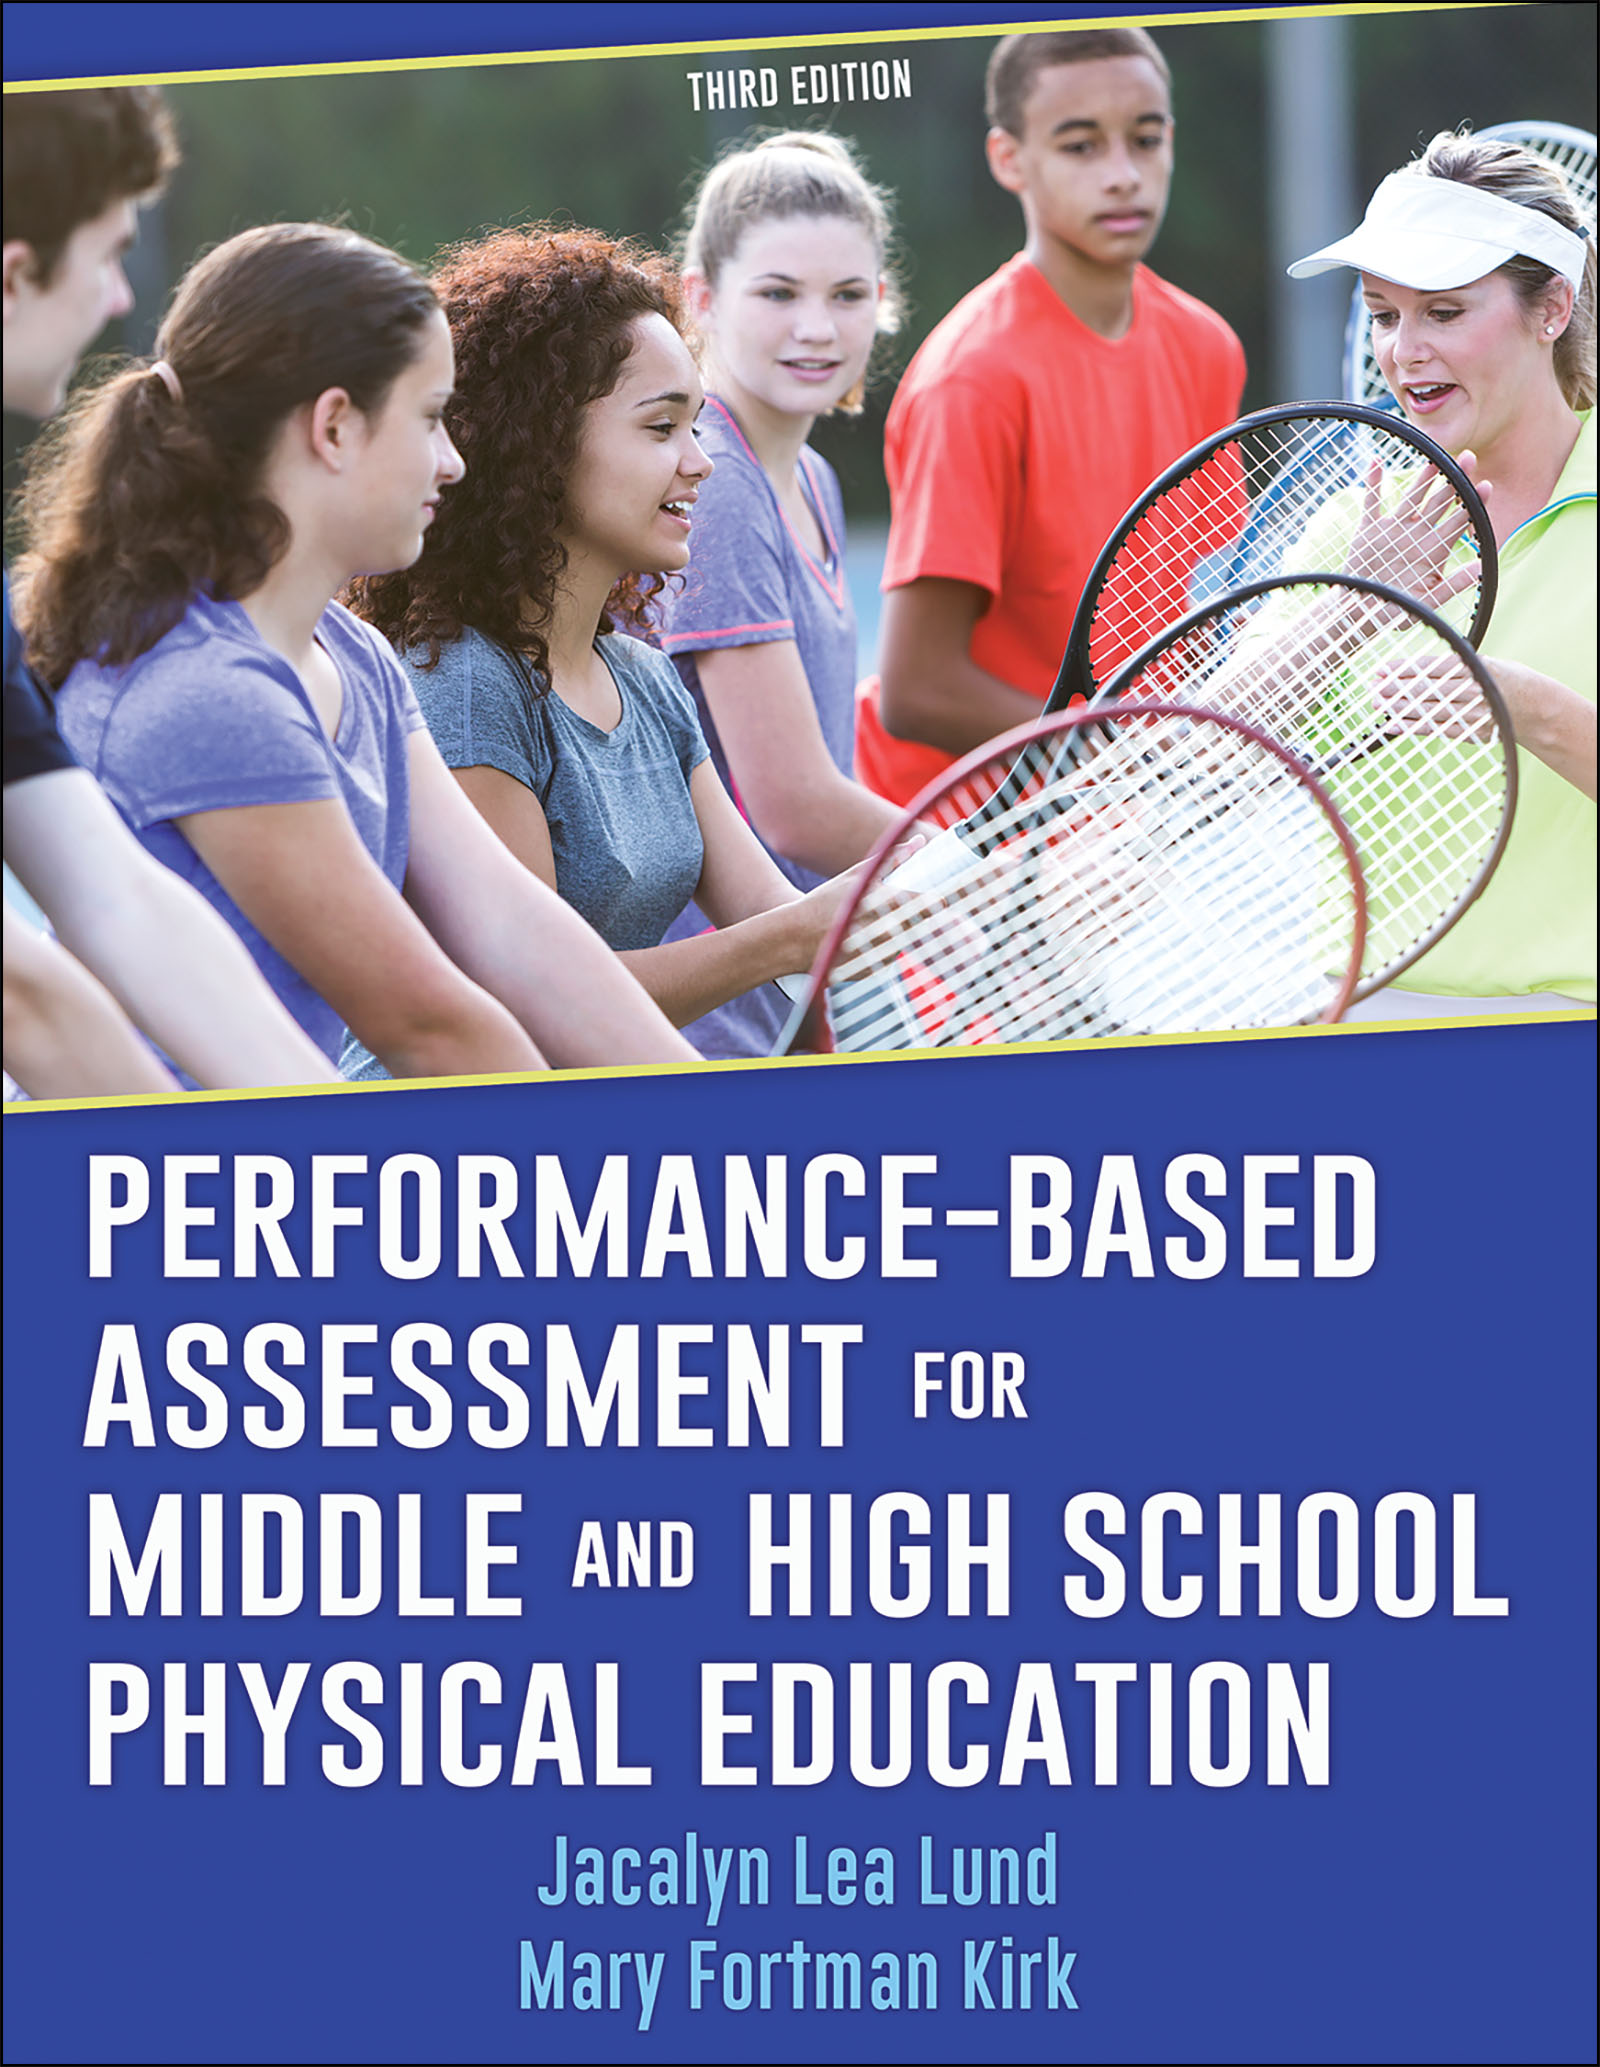 Performance-Based Assessment for Middle and High School Physical Education-3rd Edition